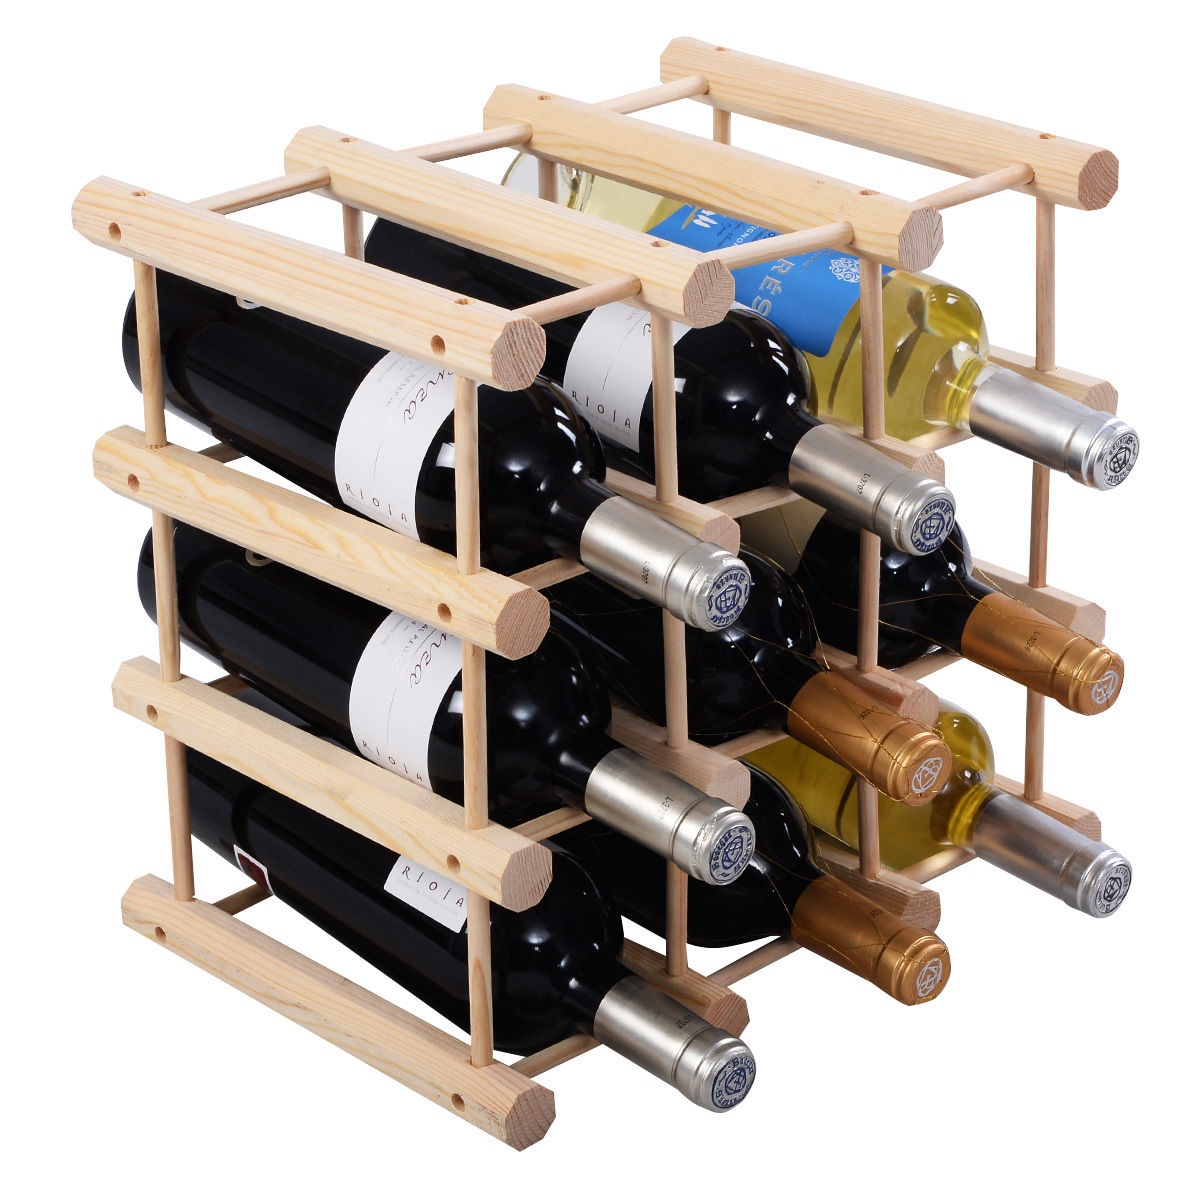 Costway 12 Bottle Wood Wine Rack Bottle Holder Storage Display Natural Kitchen